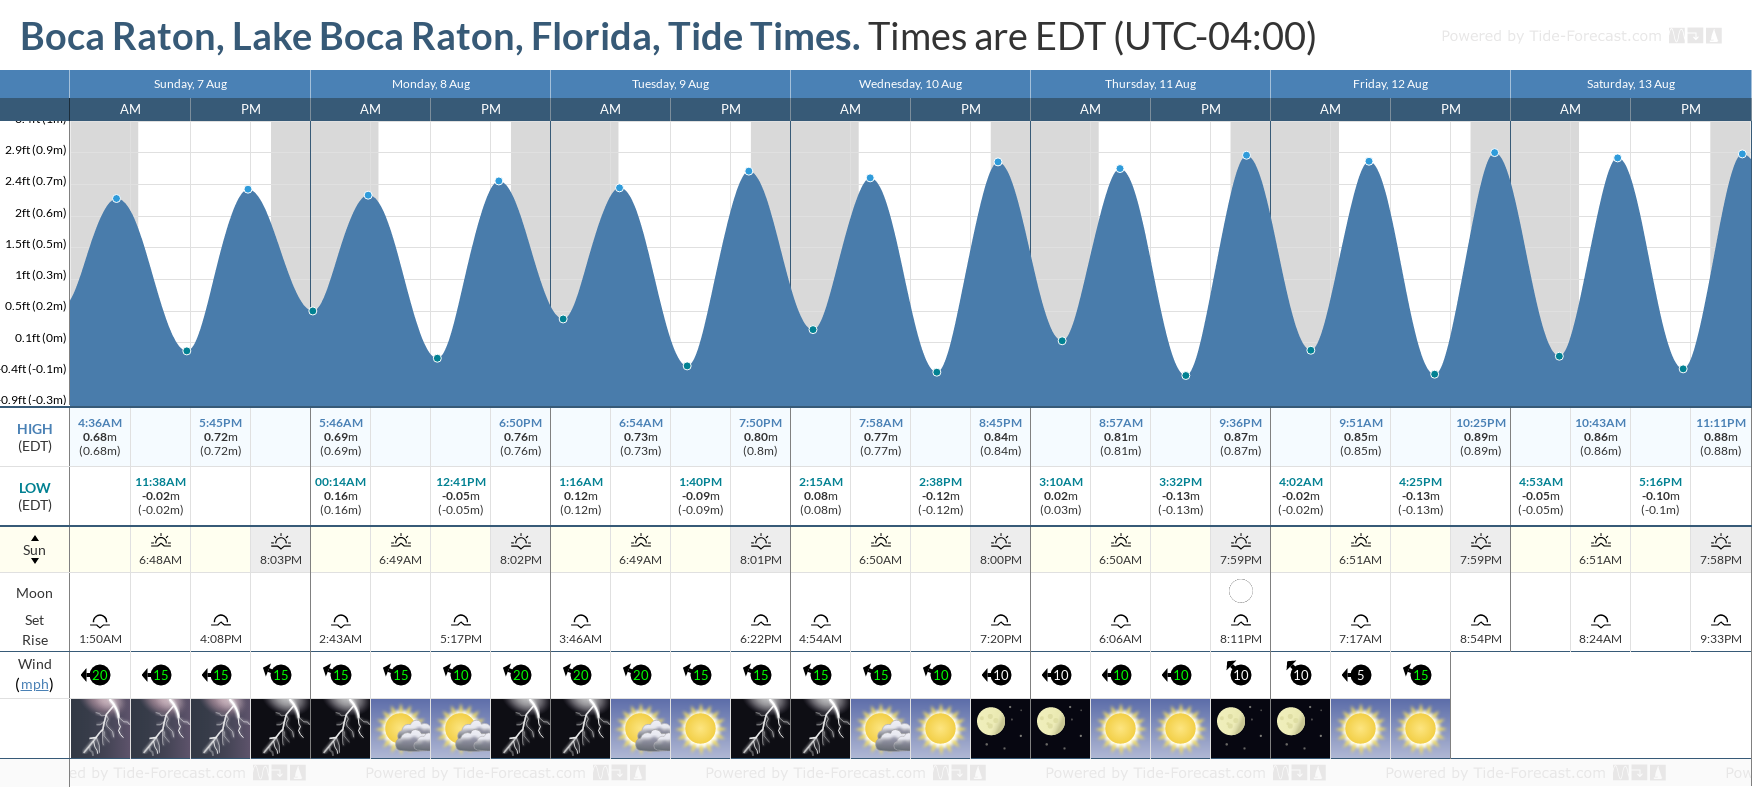 Boca Raton, Lake Boca Raton, Florida Tide Chart including high and low tide tide times for the next 7 days